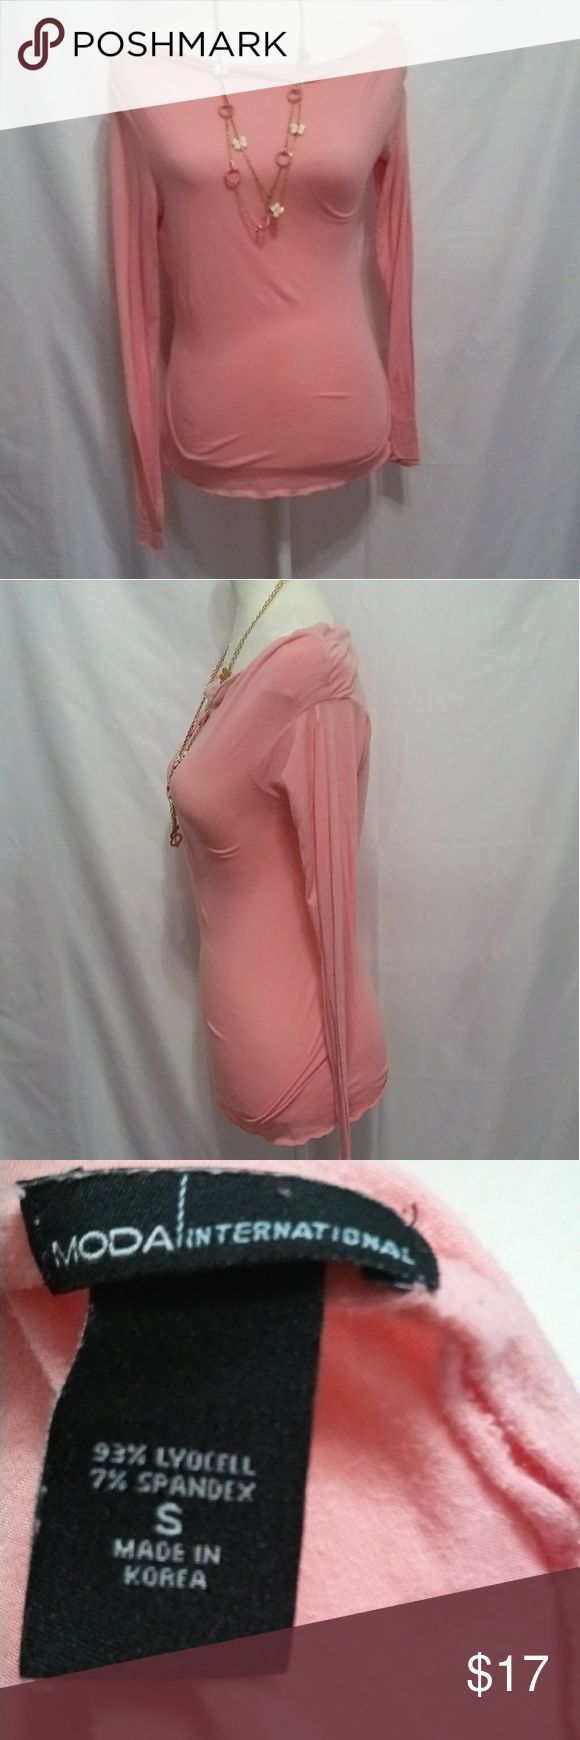 Victoria's Secret Womens long sleeve top.  Size S Victoria's Secret women's Peach long sleeve top. Brand name is m o d a international. This brand was sold out of the Victoria Secret catalog. Moda International Tops Tees - Long Sleeve